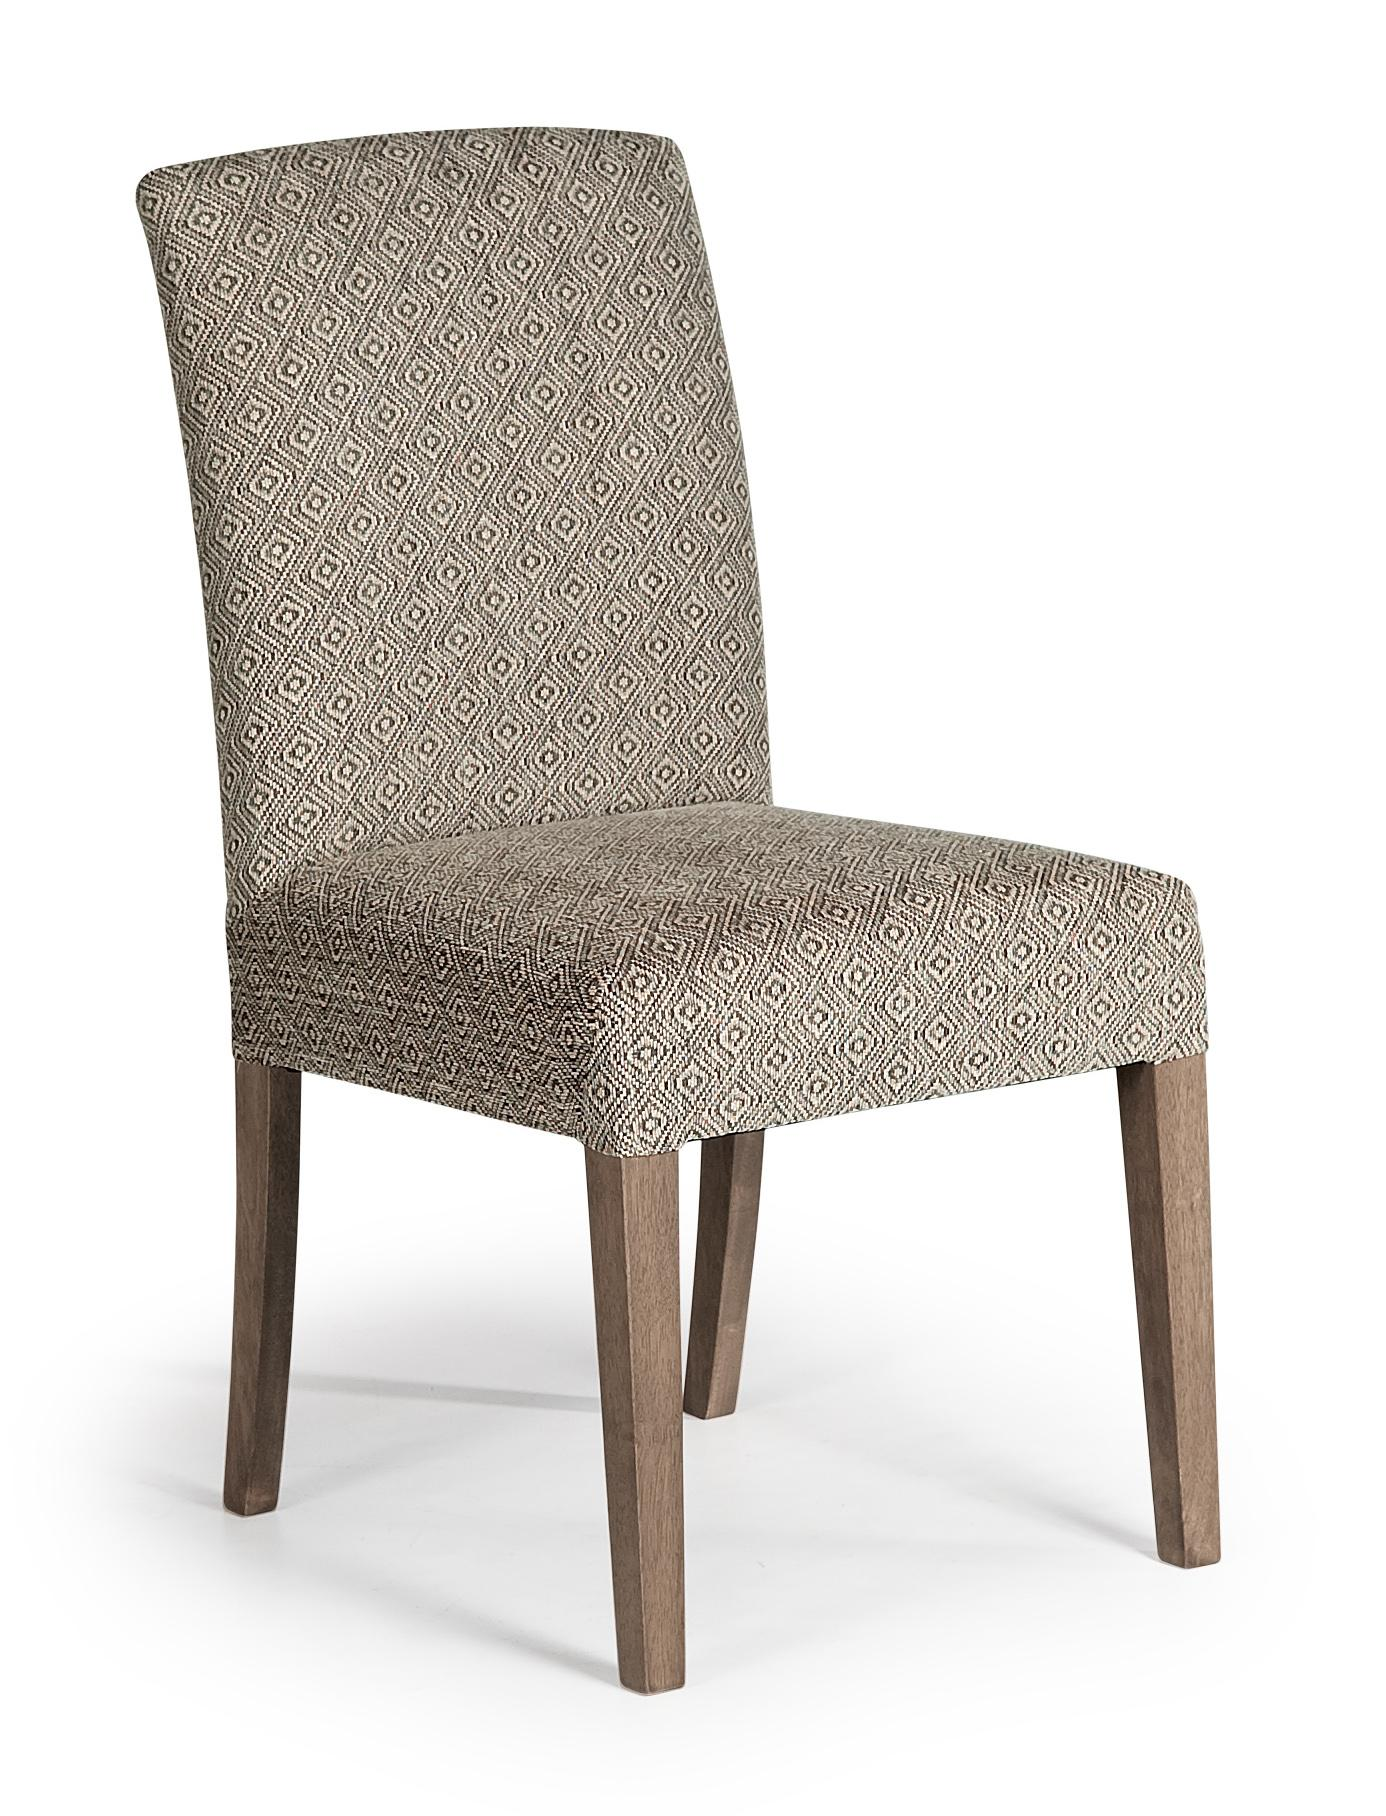 Best Home Furnishings Chairs Dining Myer Upholstered